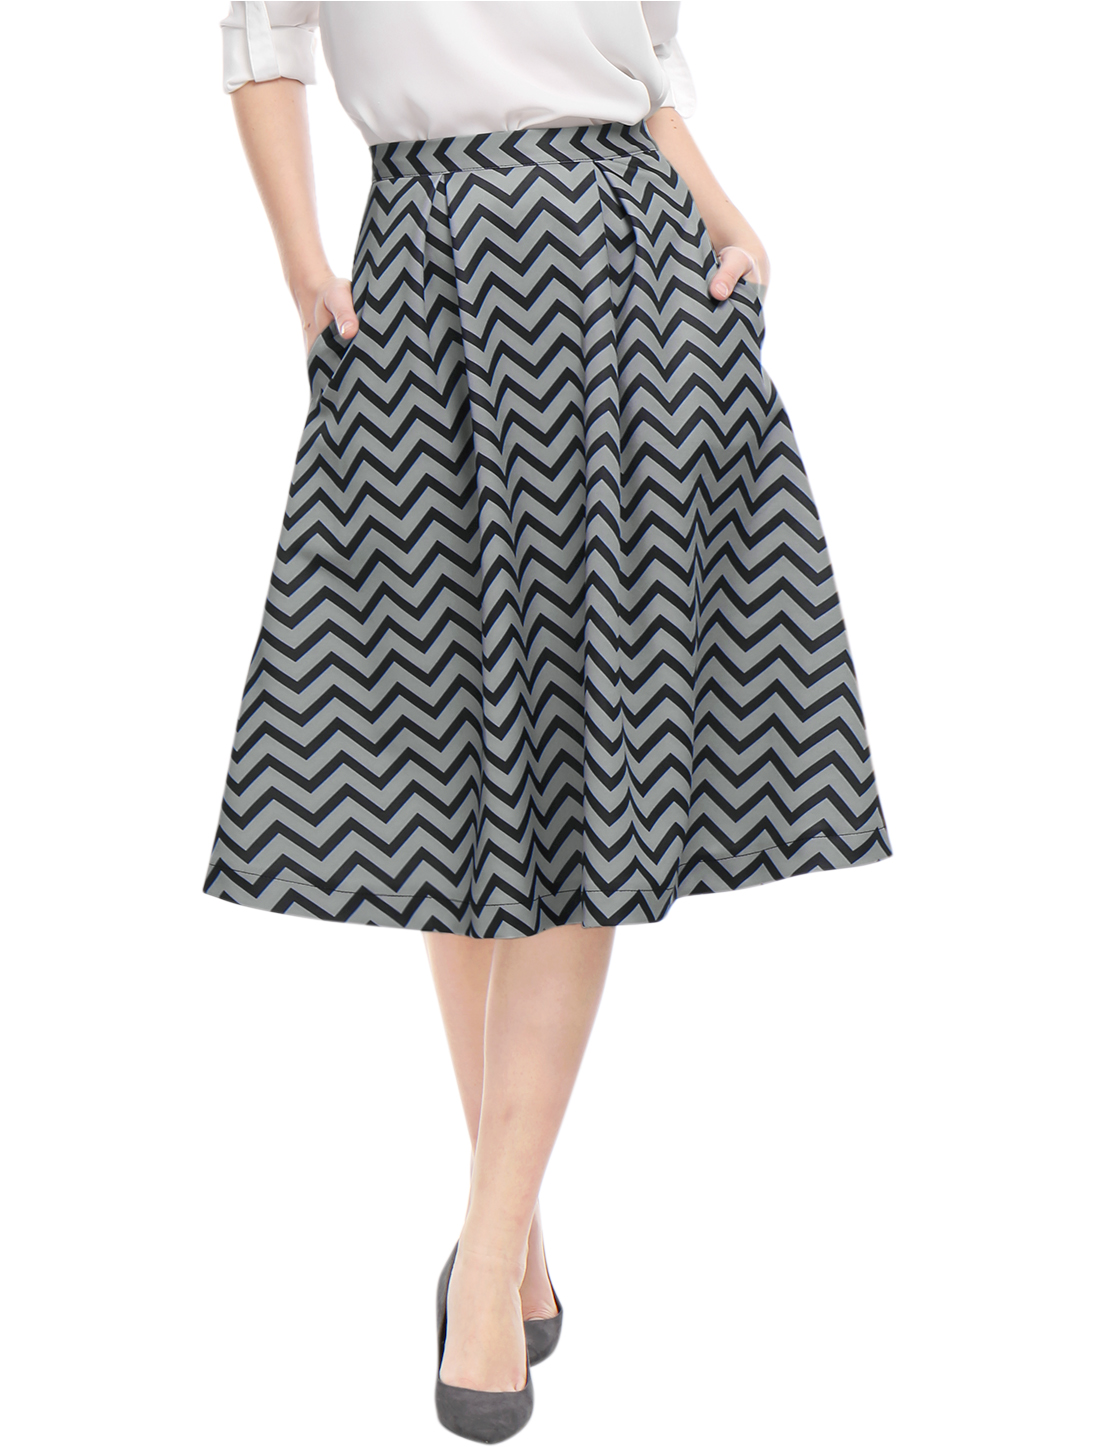 Unique Bargains Women's Zig-Zag Pattern High Waist Pockets Full Midi Skirt Gray (Size L / 14)